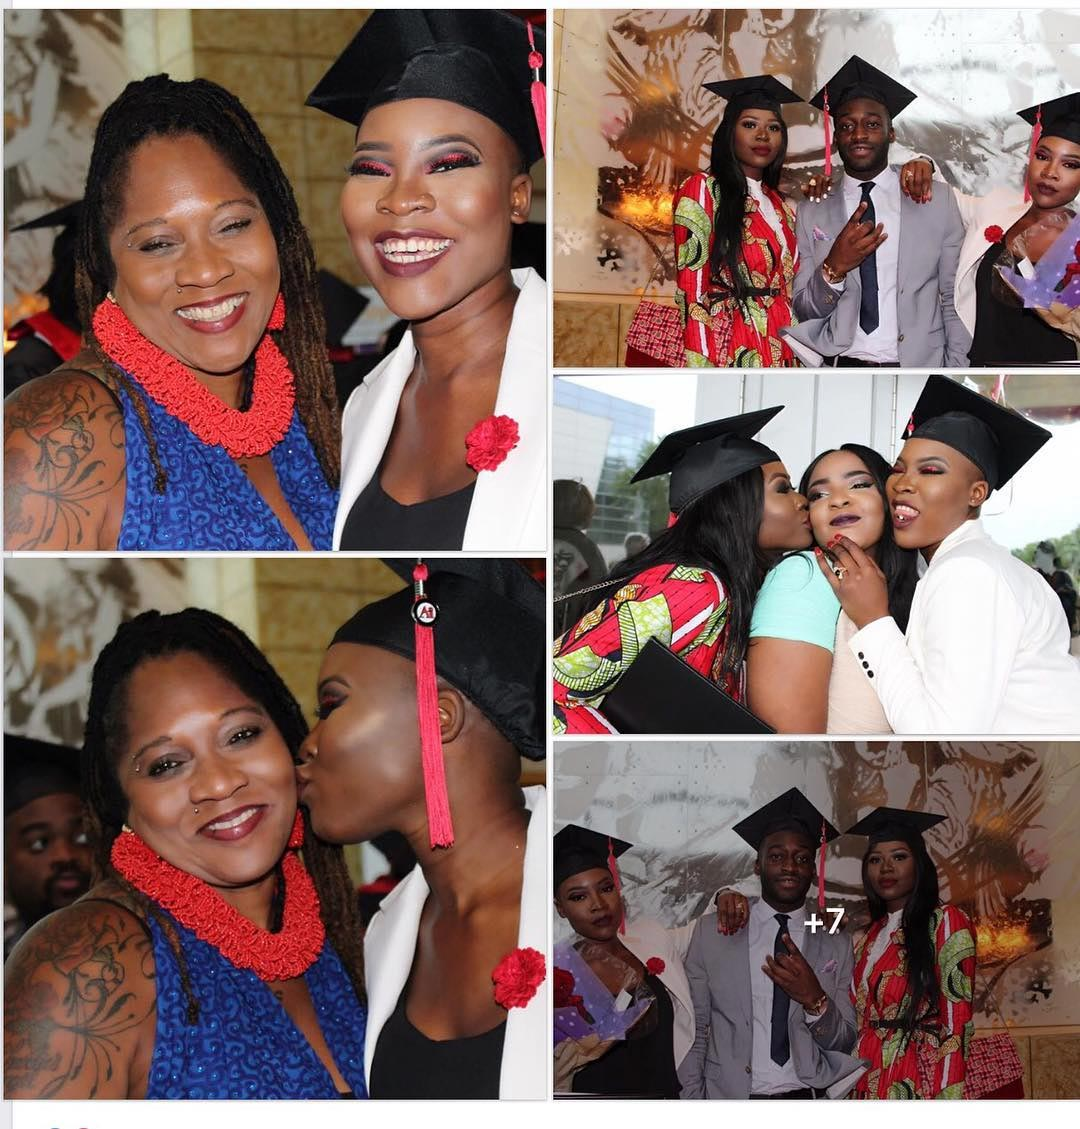 Charley Boy's daughter Dewy Oputa bags Arts degree